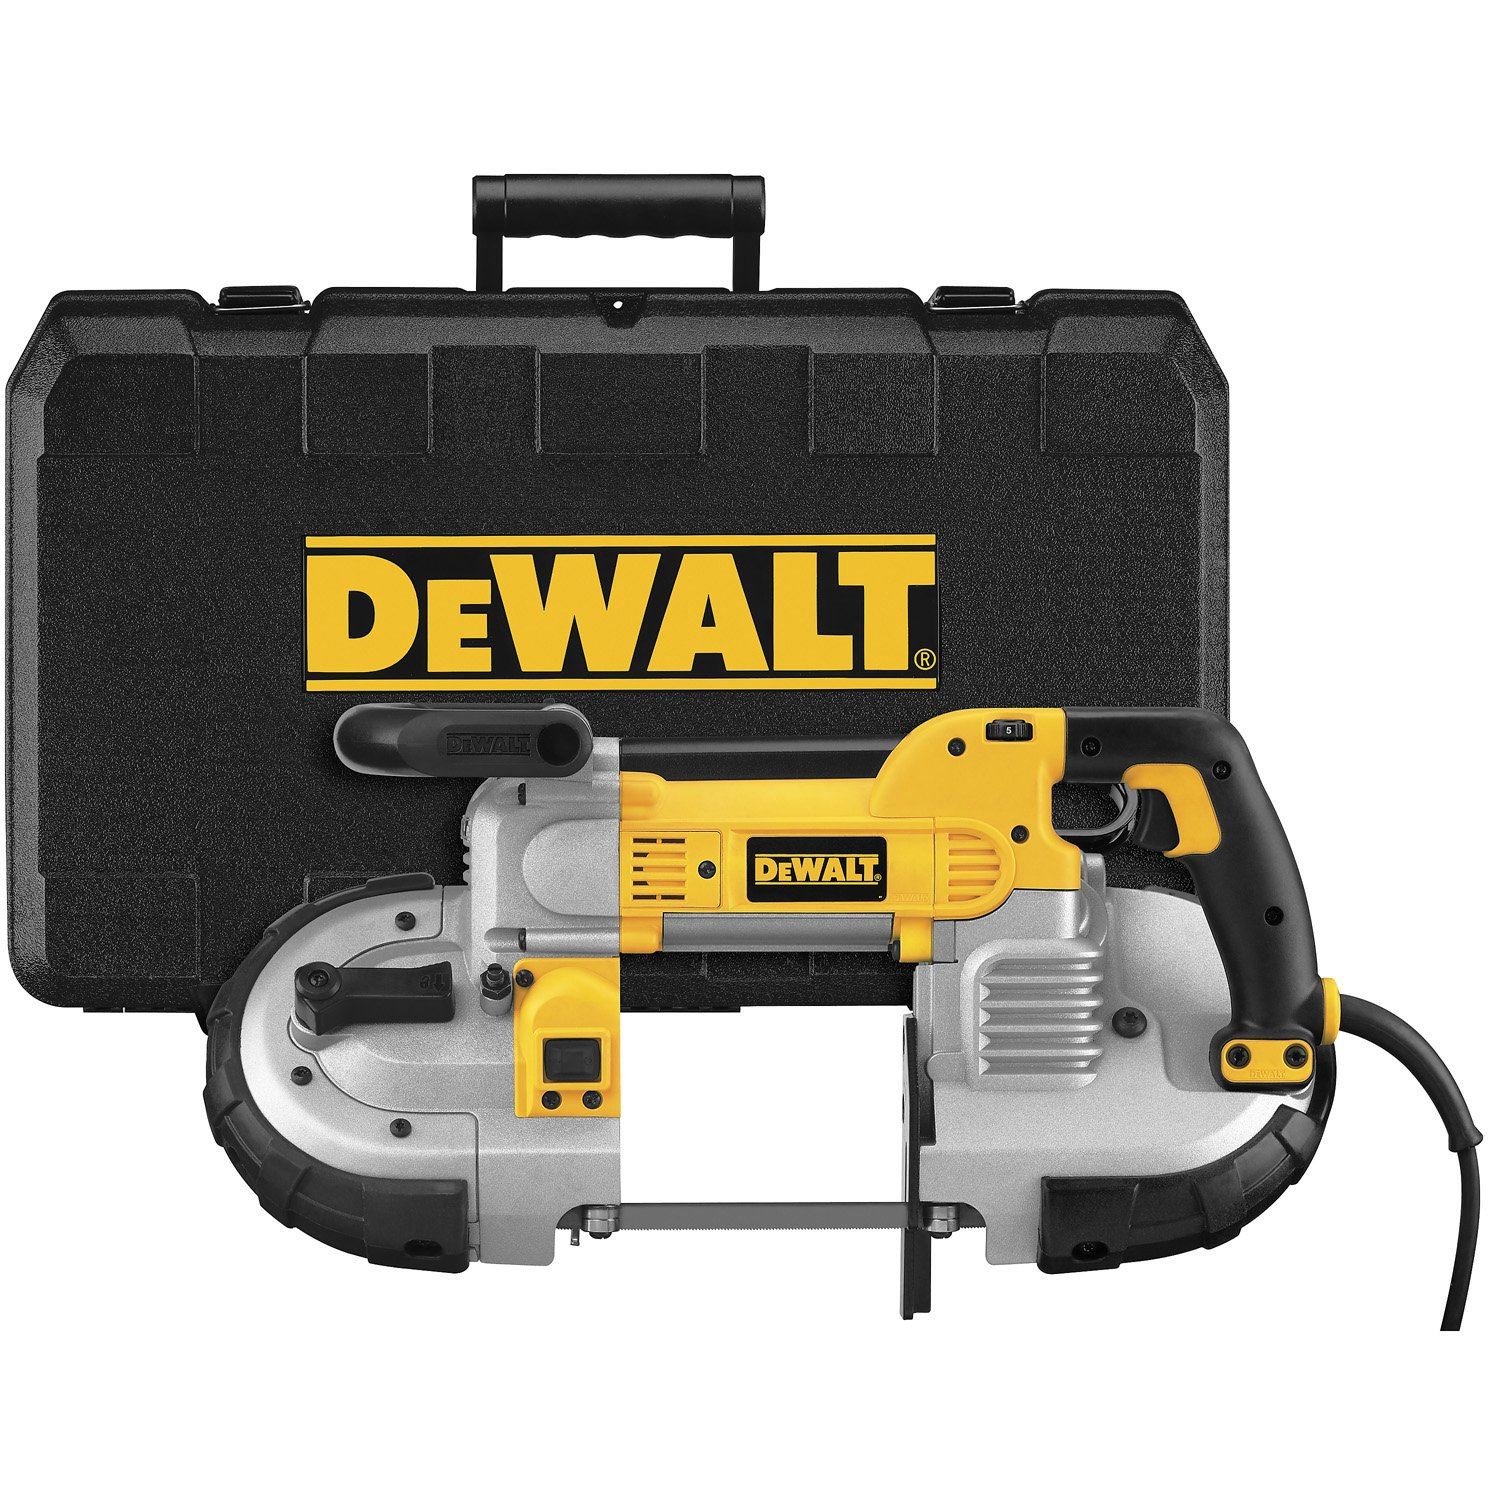 Dewalt dwm120k 10 amp 5 inch deep cut portable band saw kit power dewalt dwm120k 10 amp 5 inch deep cut portable band saw kit power band saws amazon greentooth Images